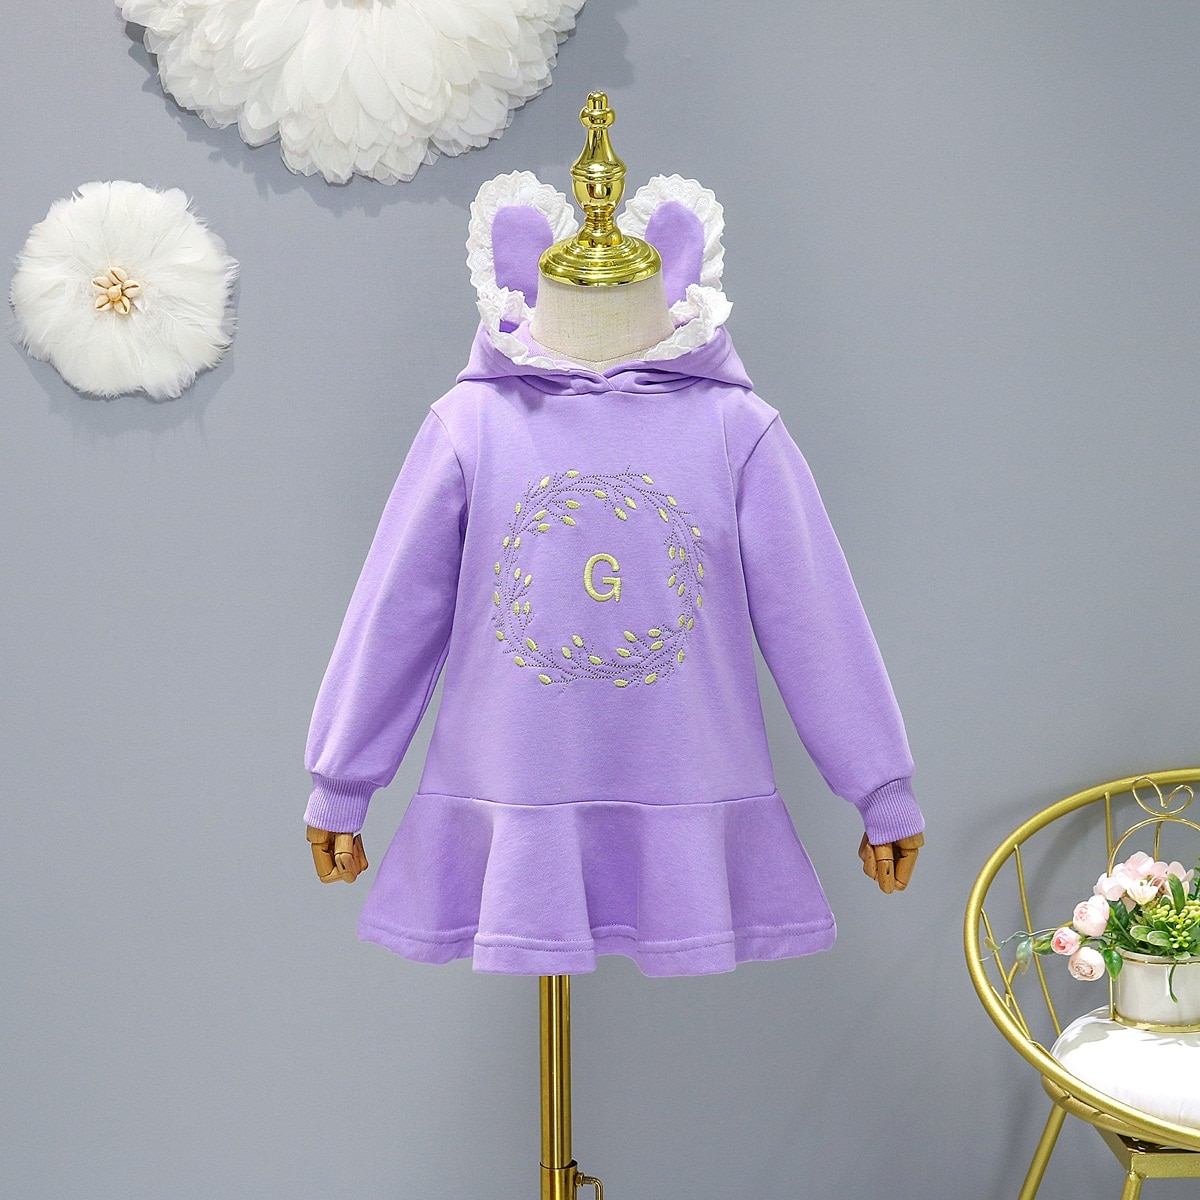 Kids Dress Baby Girls Clothes Casual Costume Bunny Ear Hooded Spring Autumn 1-7 Years Daily Dresses For Girl Children's Clothing